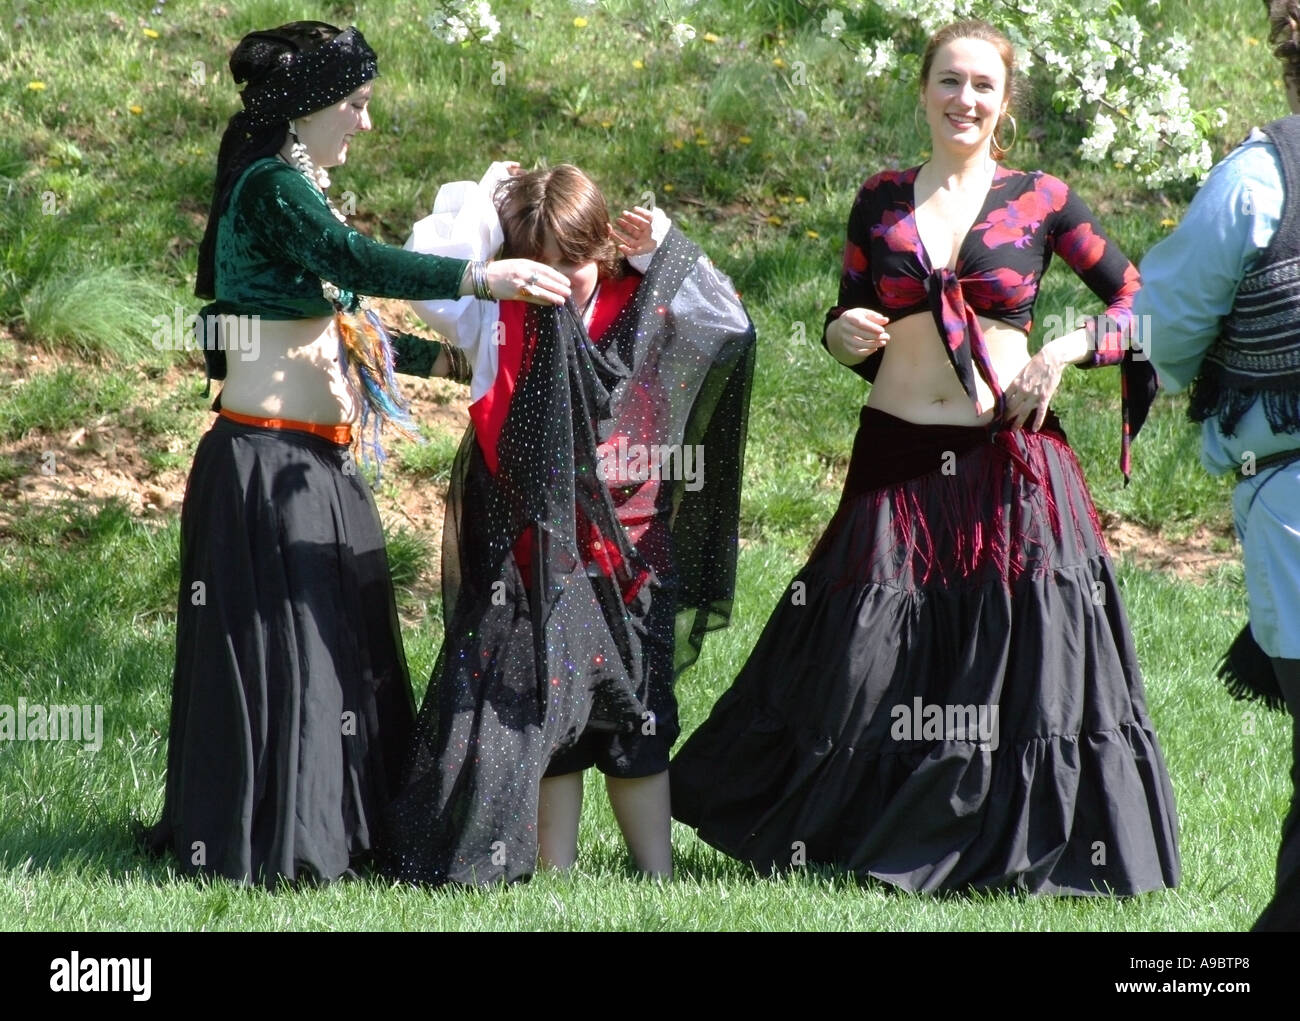 Women in traditional Gypsy costume  sc 1 st  Alamy & Women in traditional Gypsy costume Stock Photo: 7038311 - Alamy